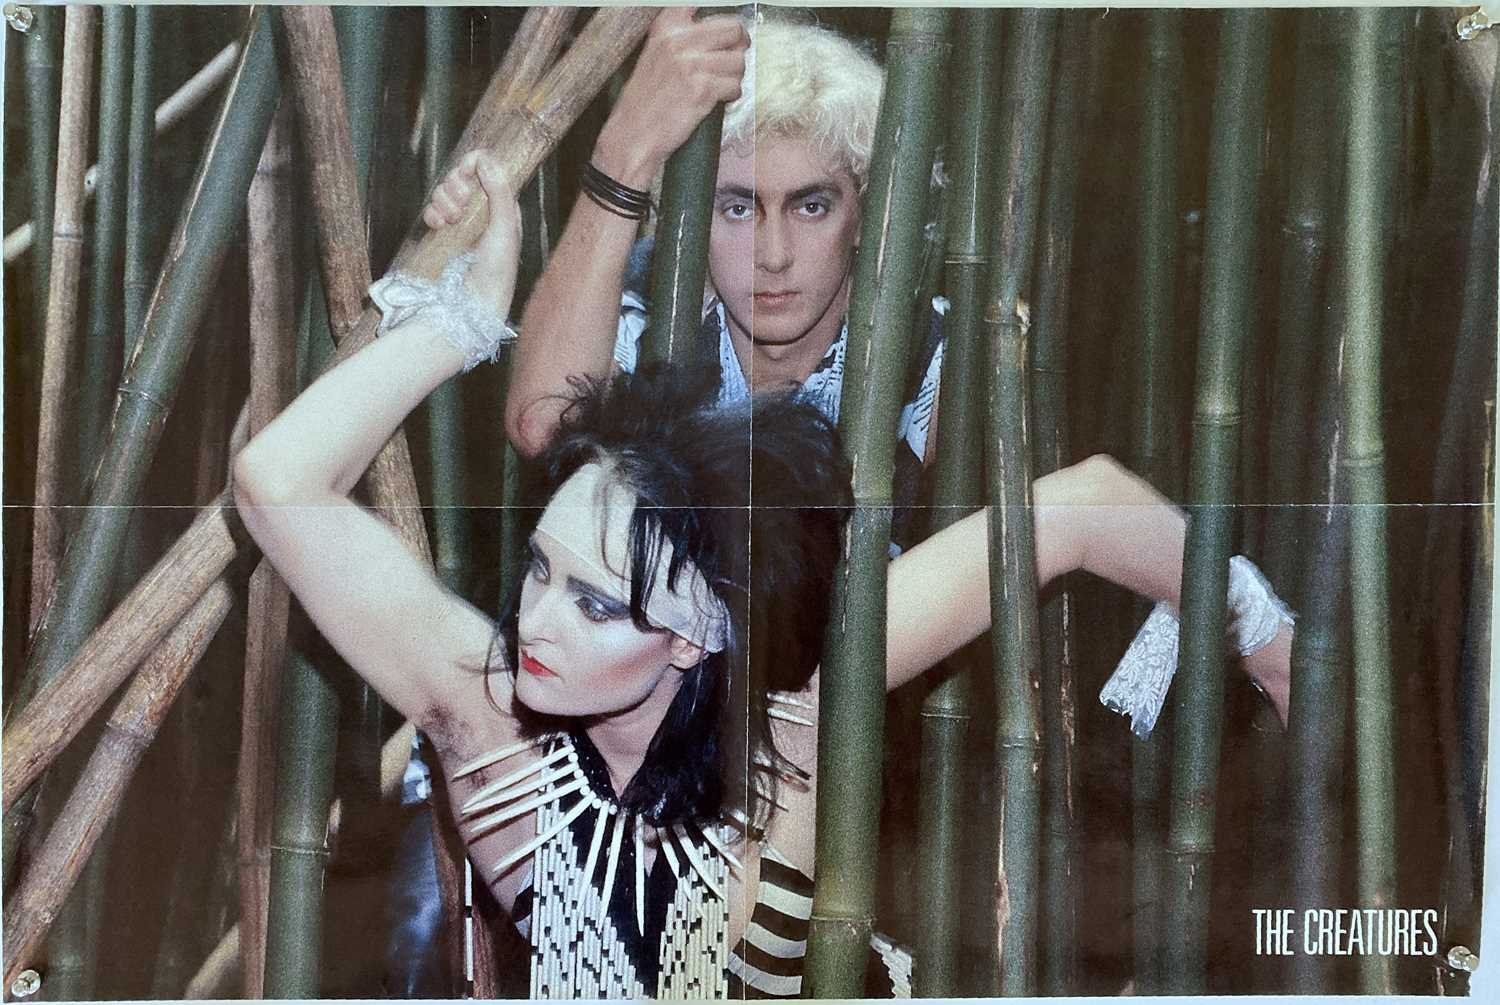 SIOUXSIE AND THE BANSHEES / THE CREATURES POSTERS. - Image 2 of 2